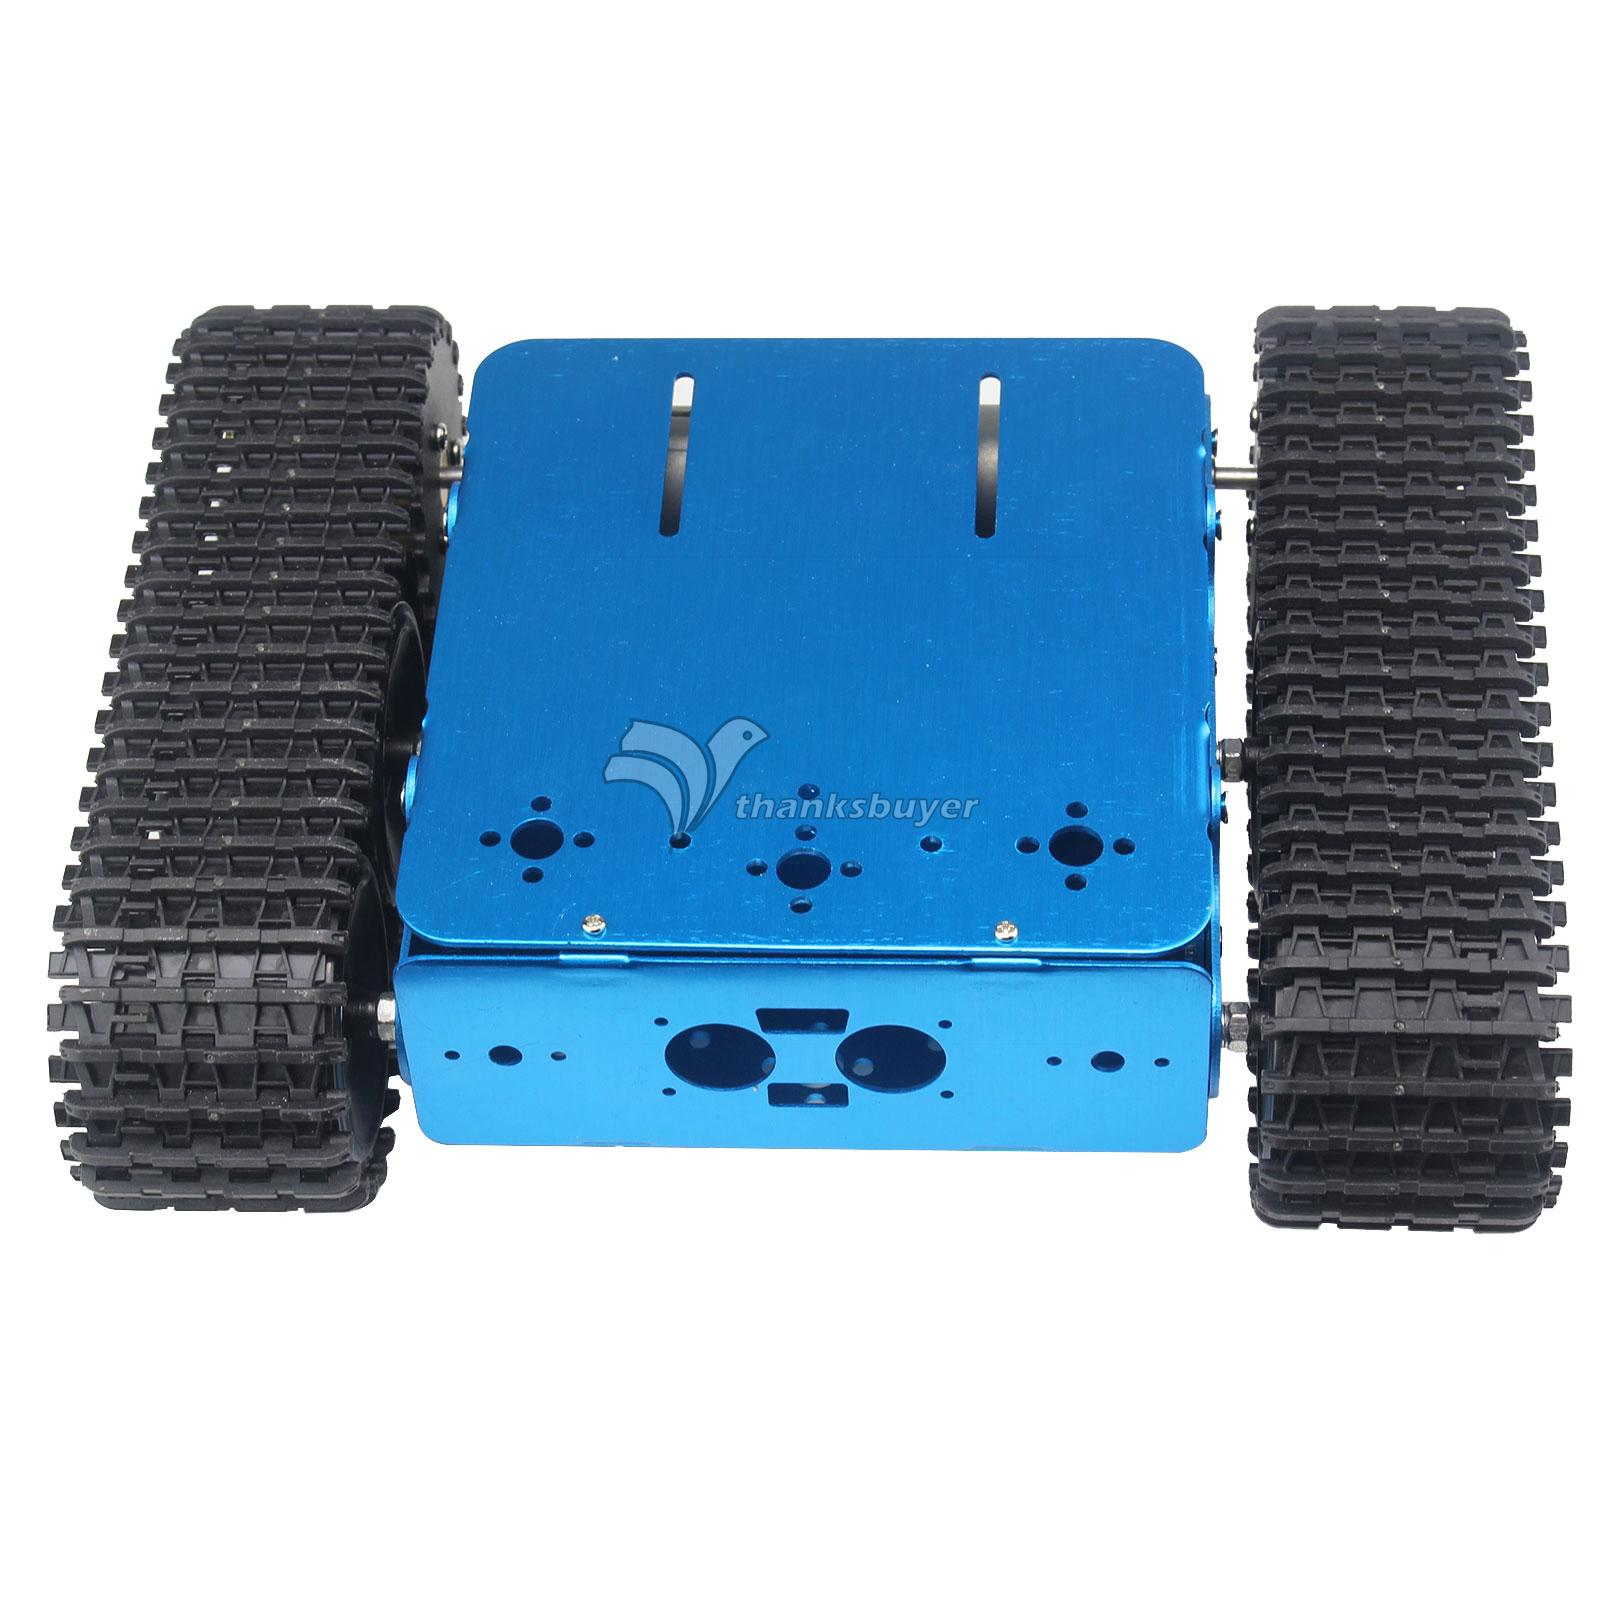 Assembled Aluminum Tracked Vehicle Tank Chassis Blue Caterpillar Tractor Crawler Intelligent Robot Car for Arduino tztrot 6 red tracked vehicle tank chassis crawler remote control robot car with dc motor for arduino